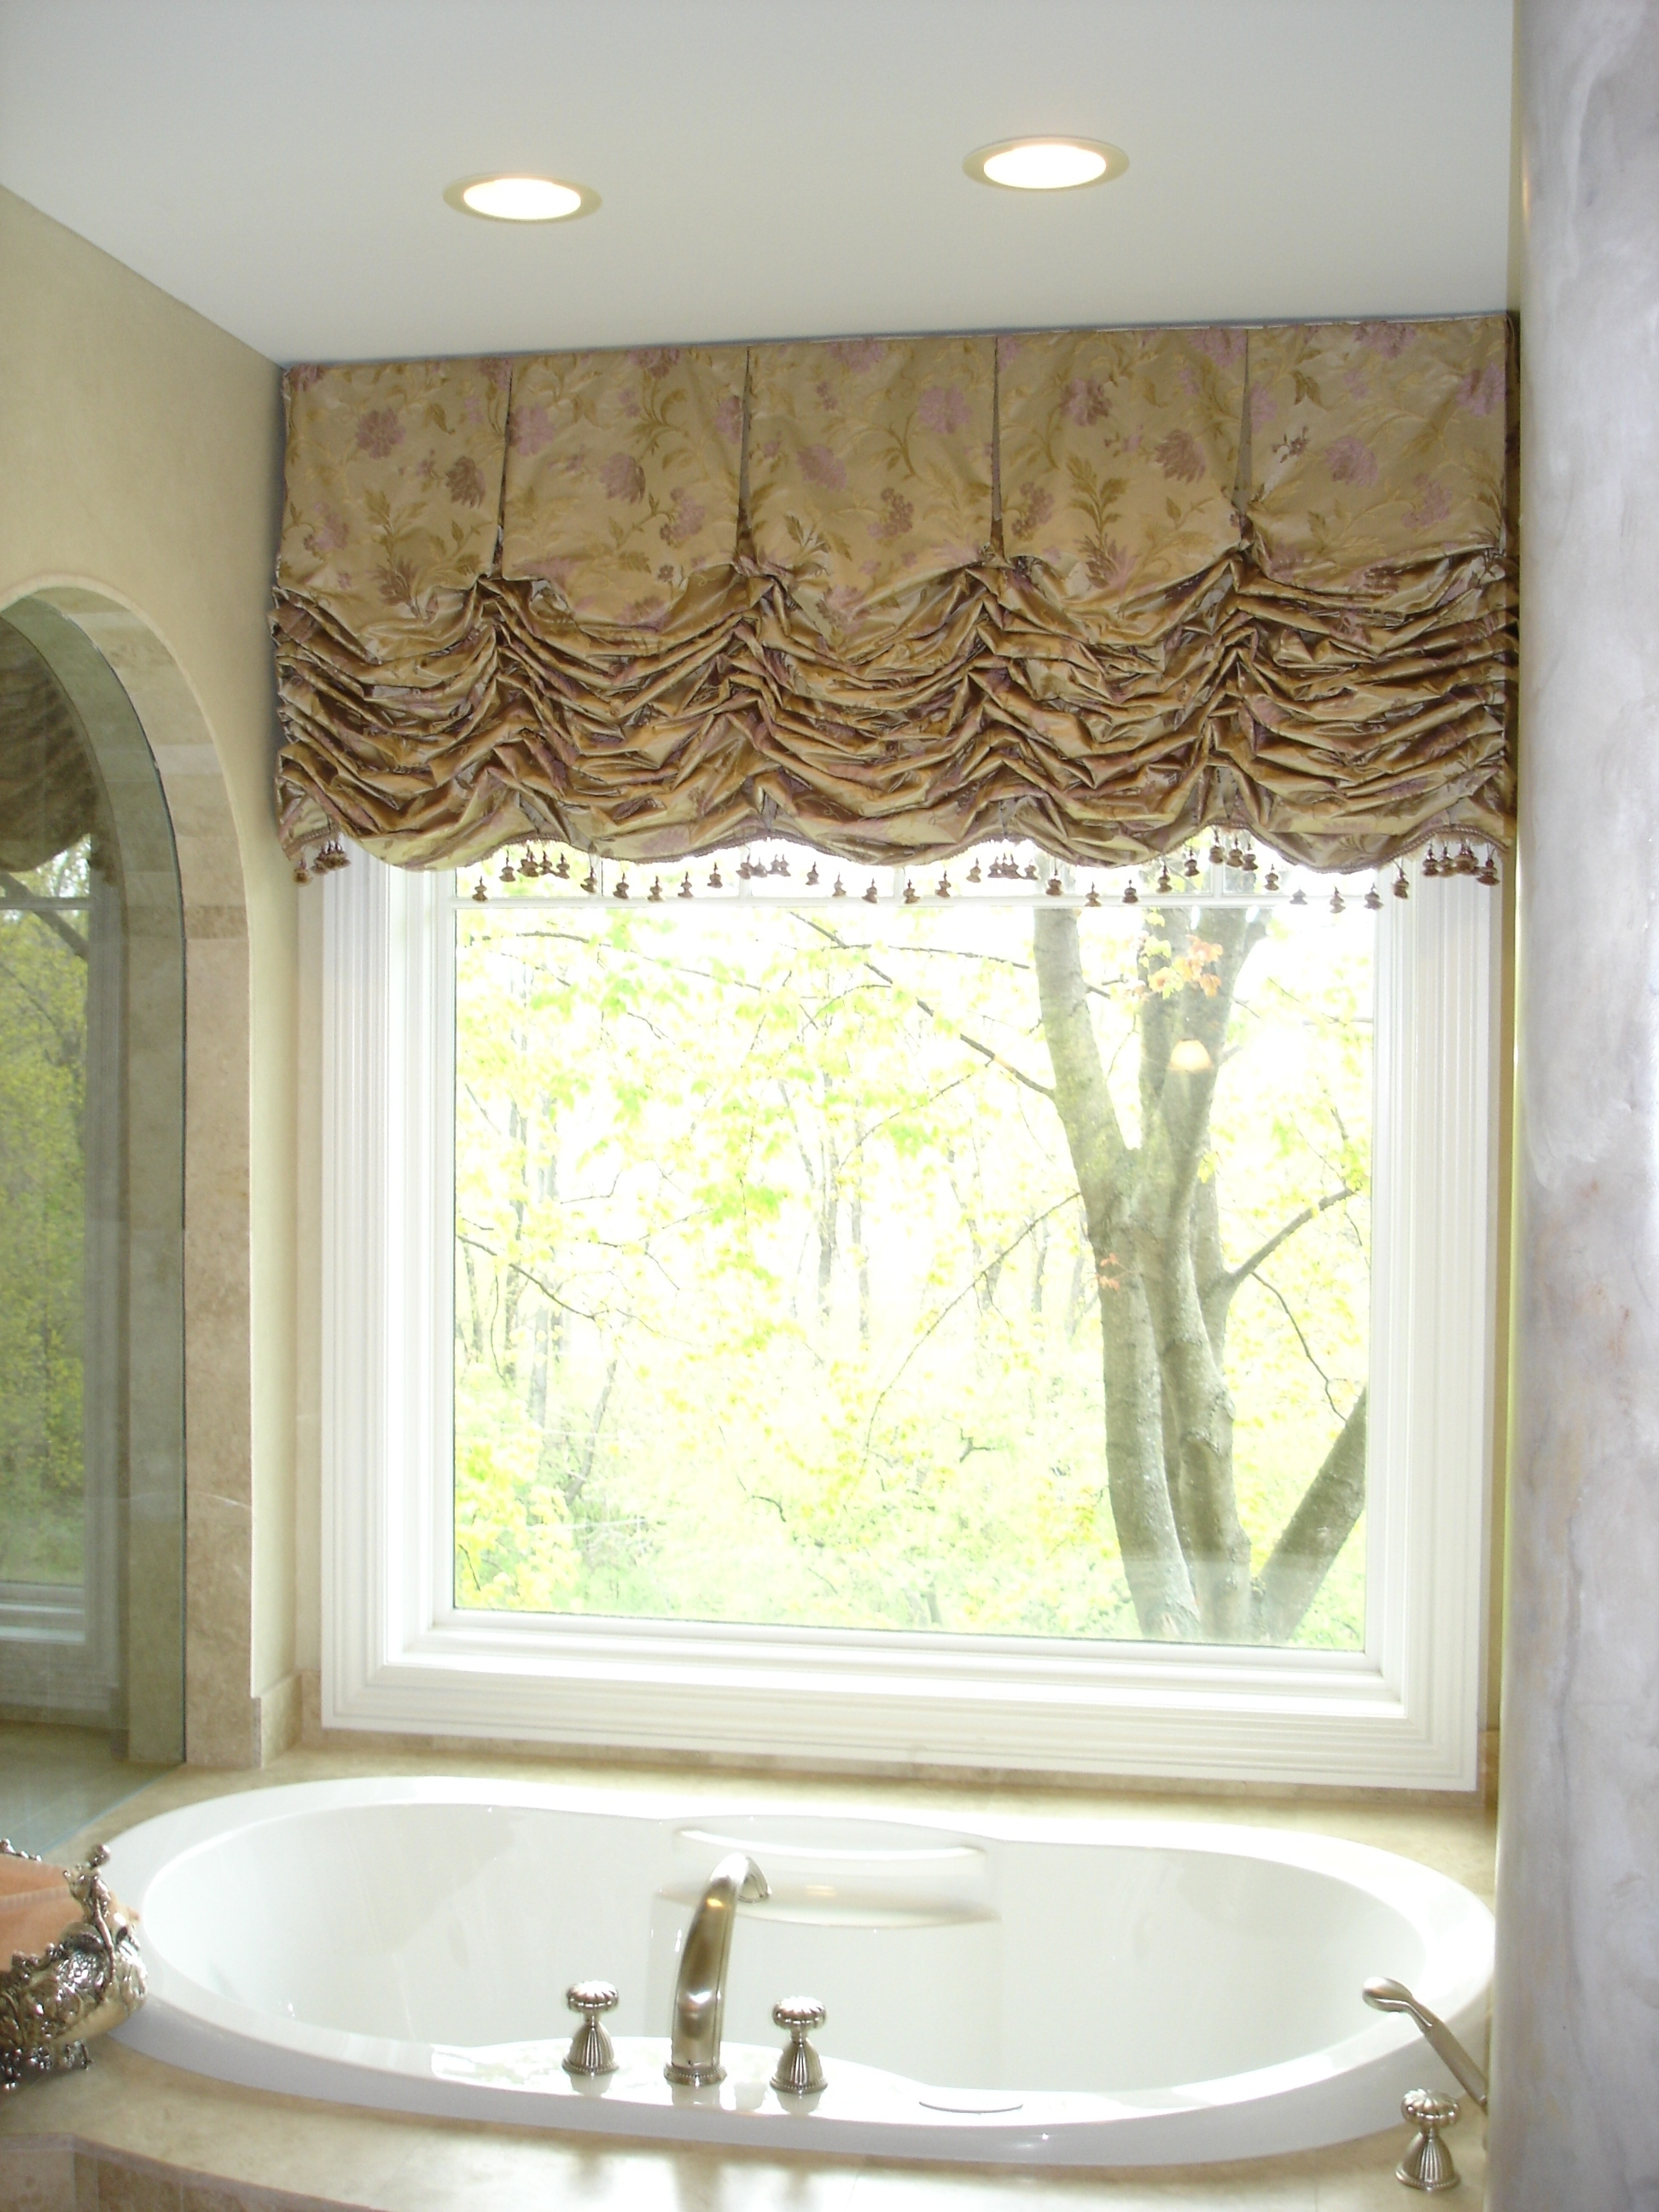 Style and elegance susan 39 s designs for Window valance